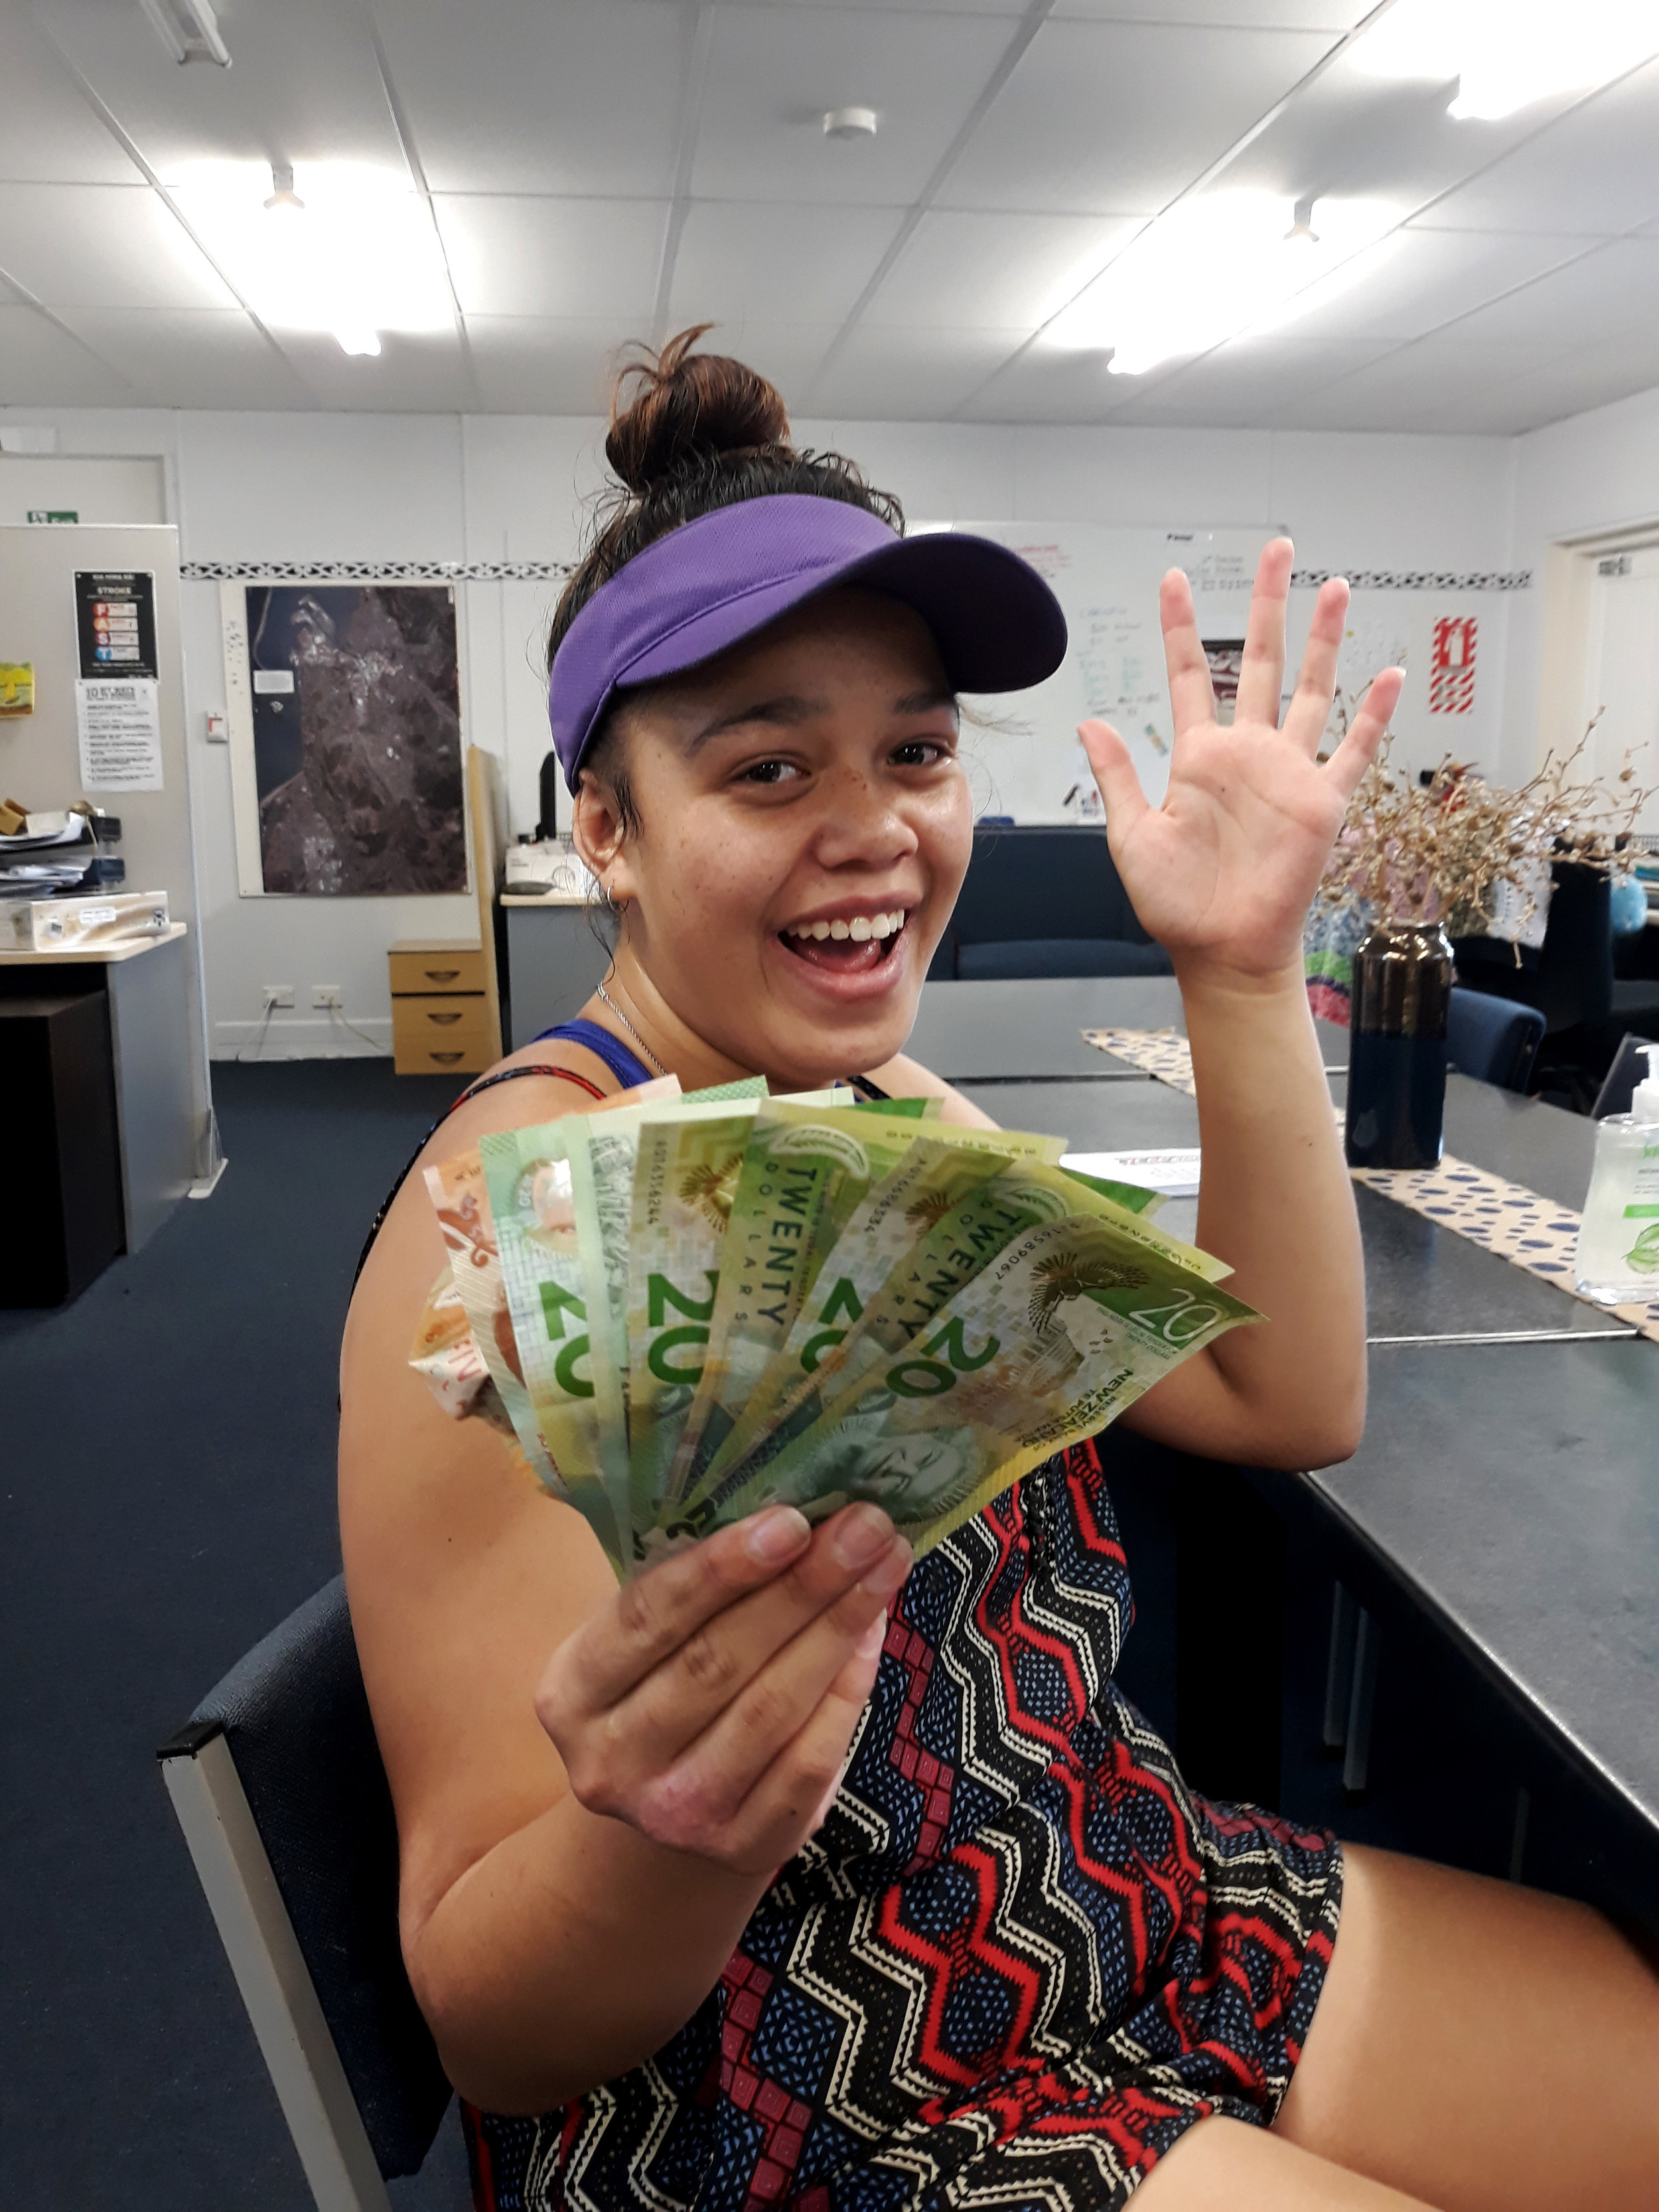 Waimaria showing off her hard earned cash from car washing